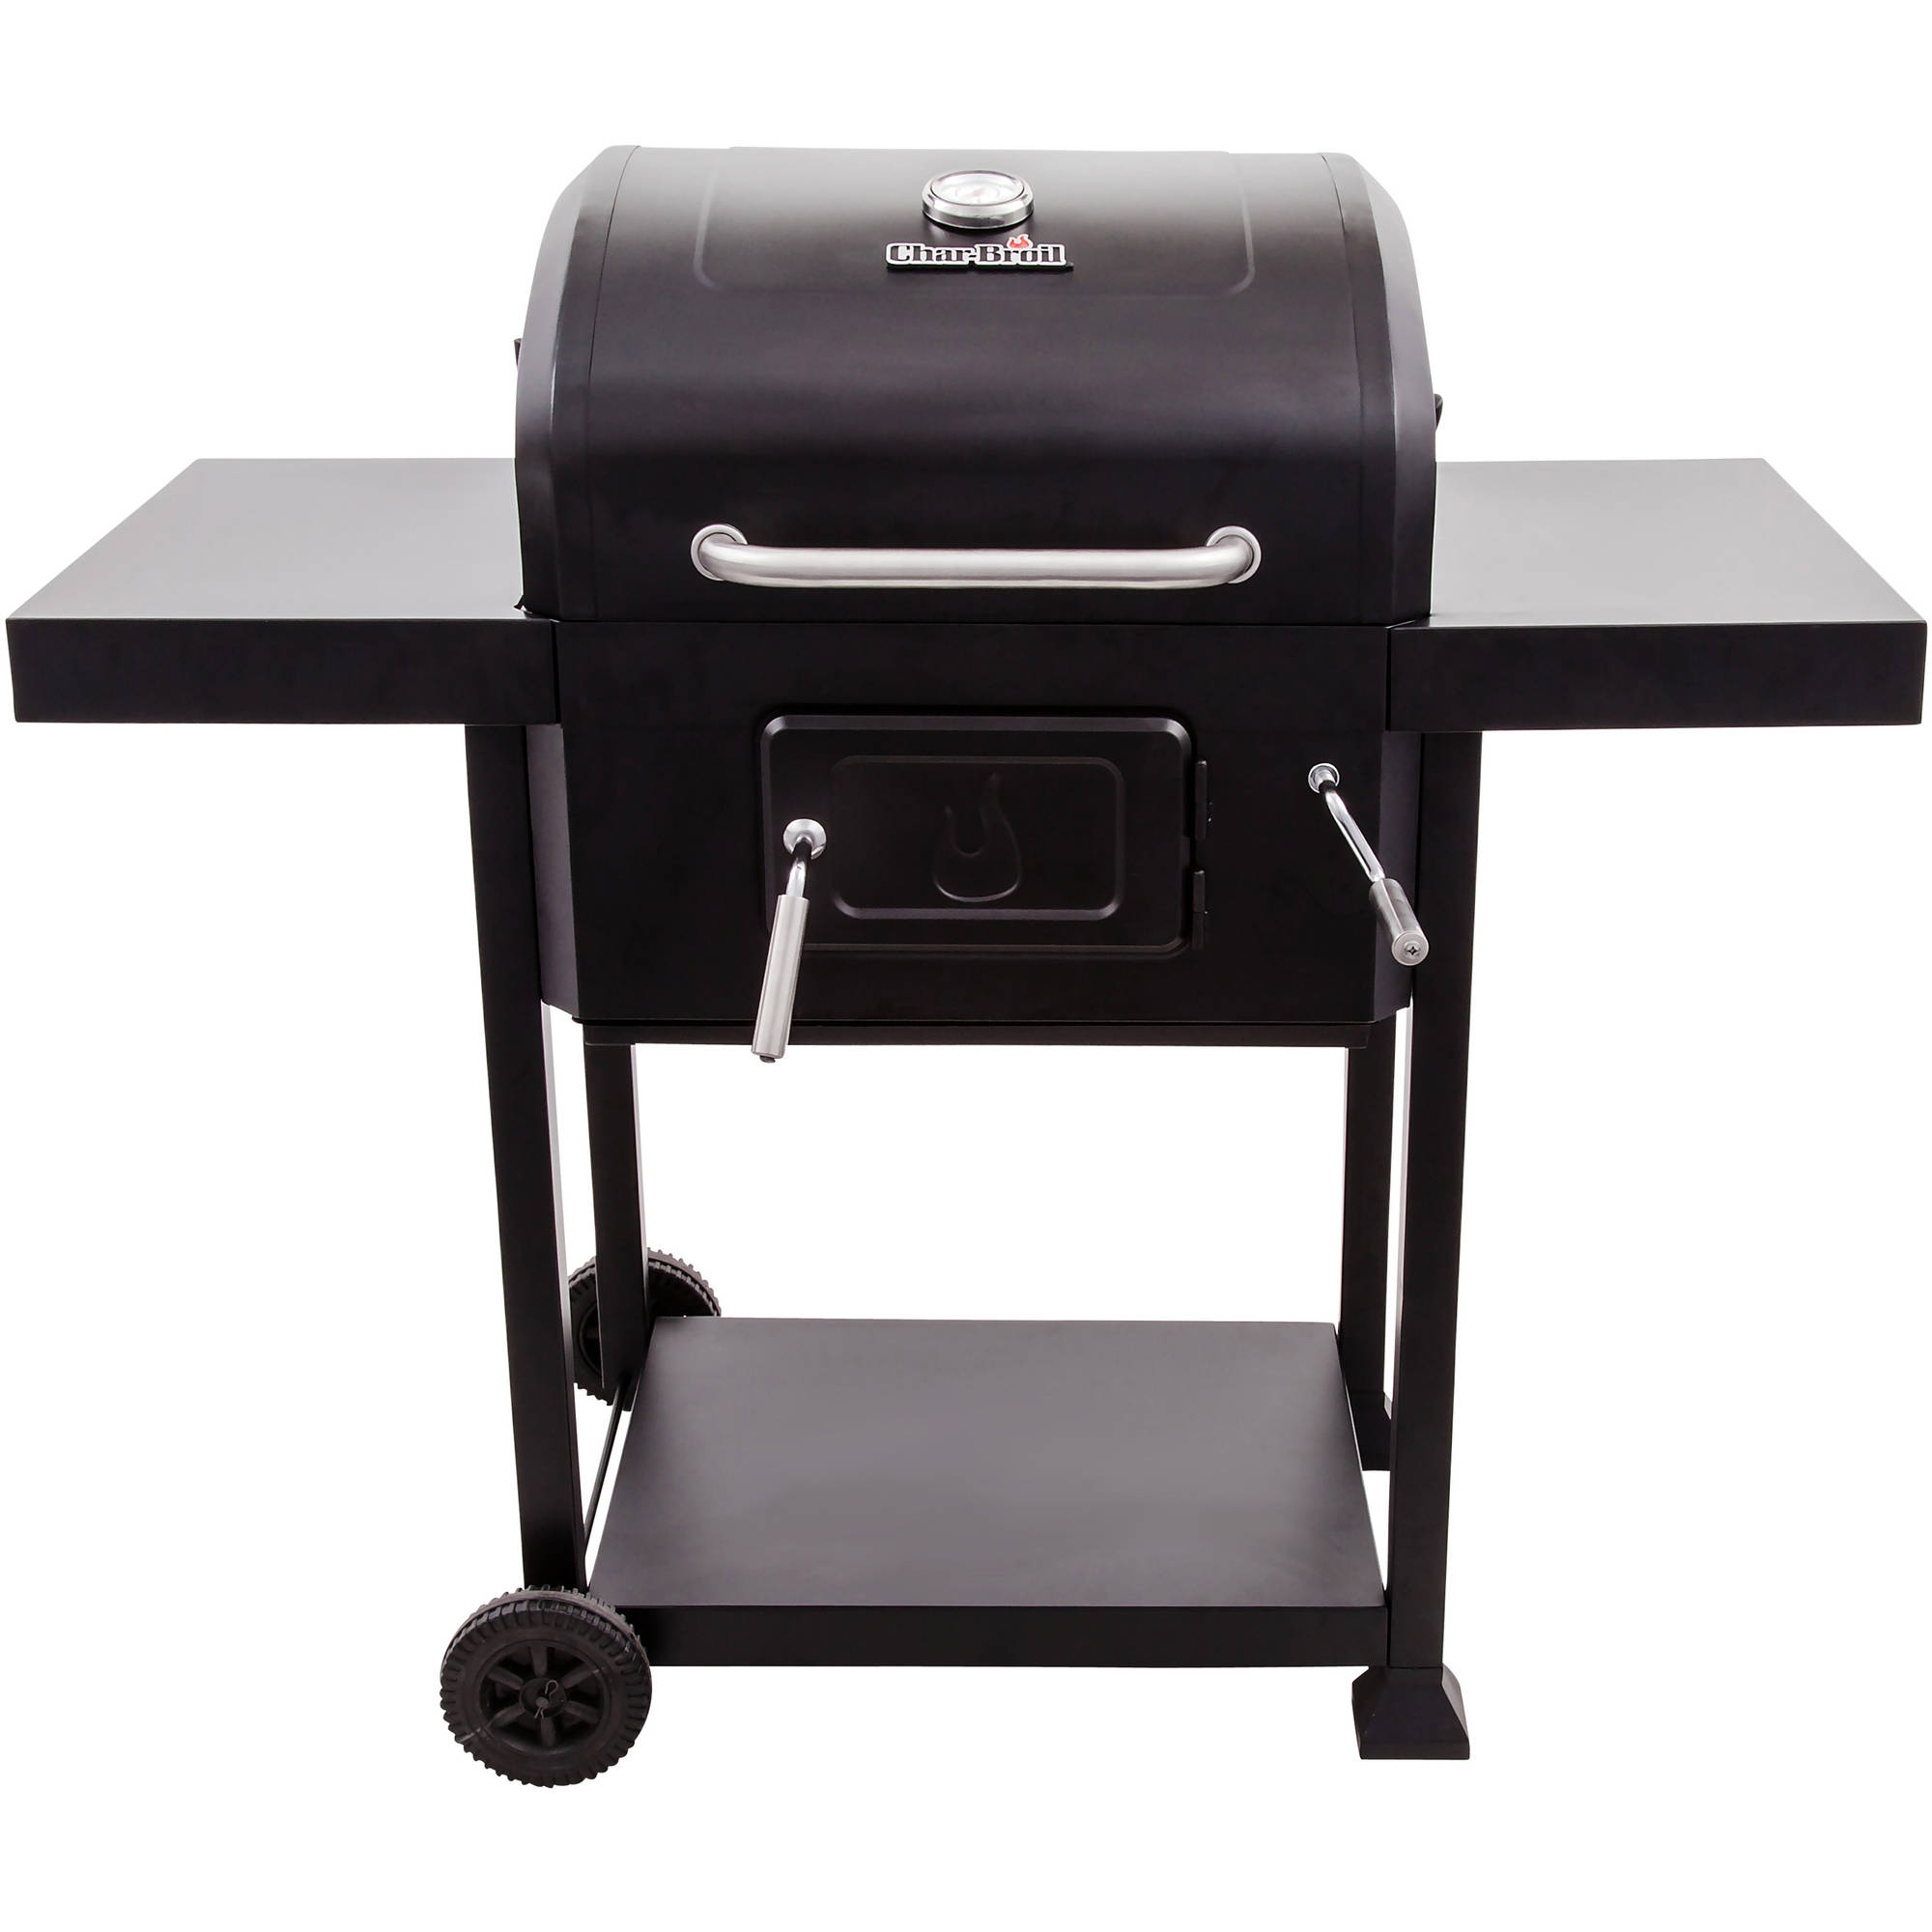 Char-Broil 400 sq in Charcoal Grill, 580 by Charcoal Grills